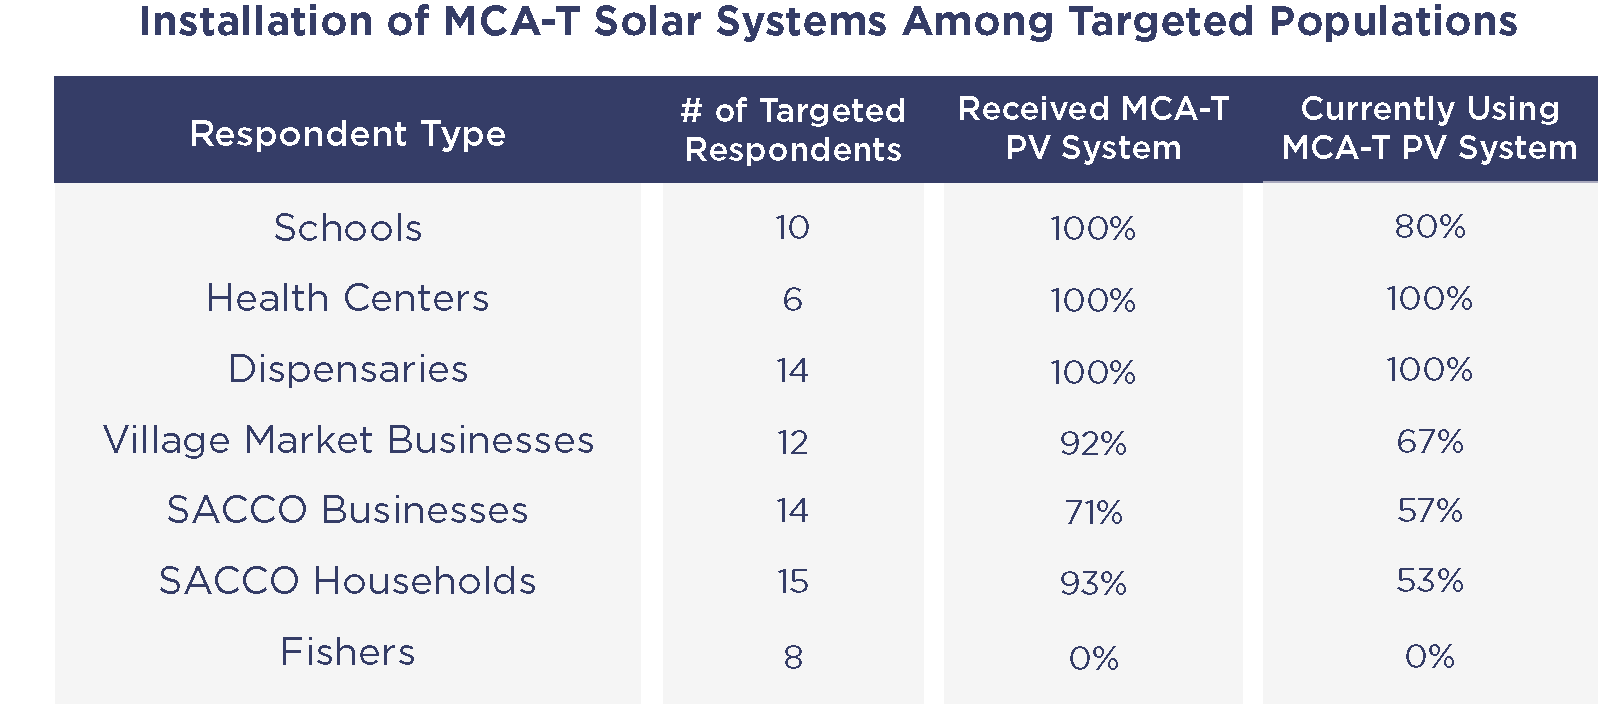 Installation of MCA-T Solar Systems Among Targeted Populations